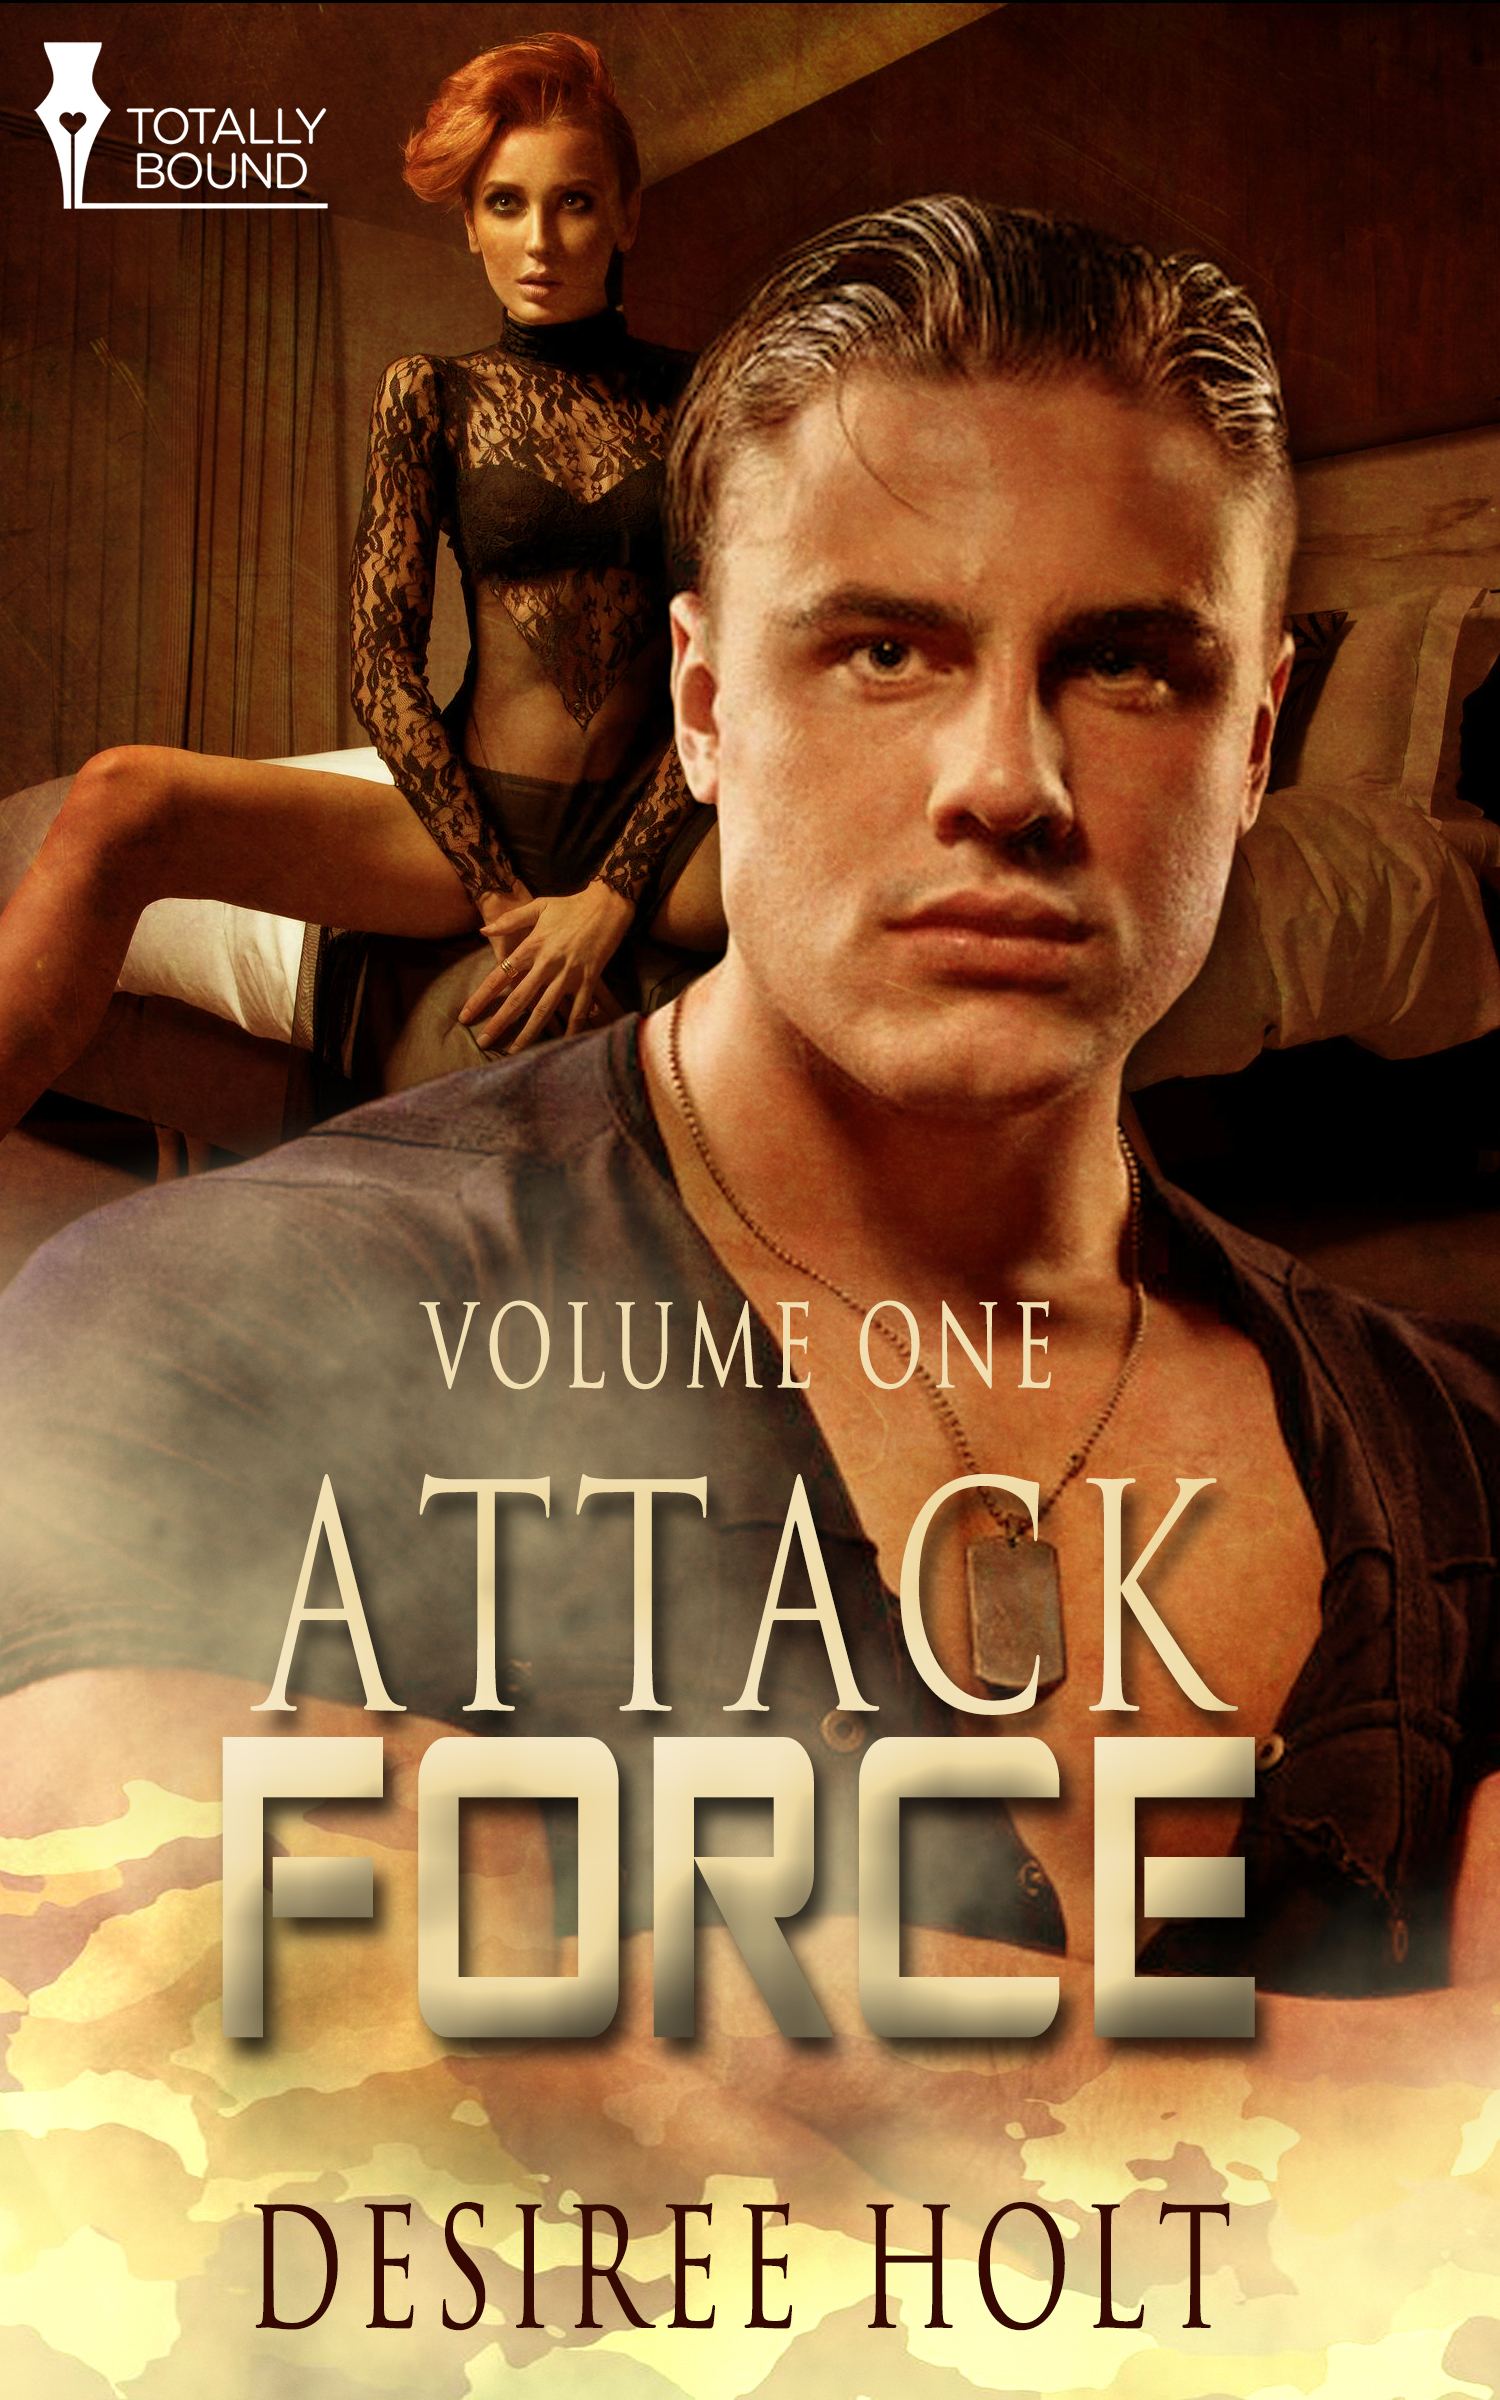 Now two hot Delta Force hunks for the price of one